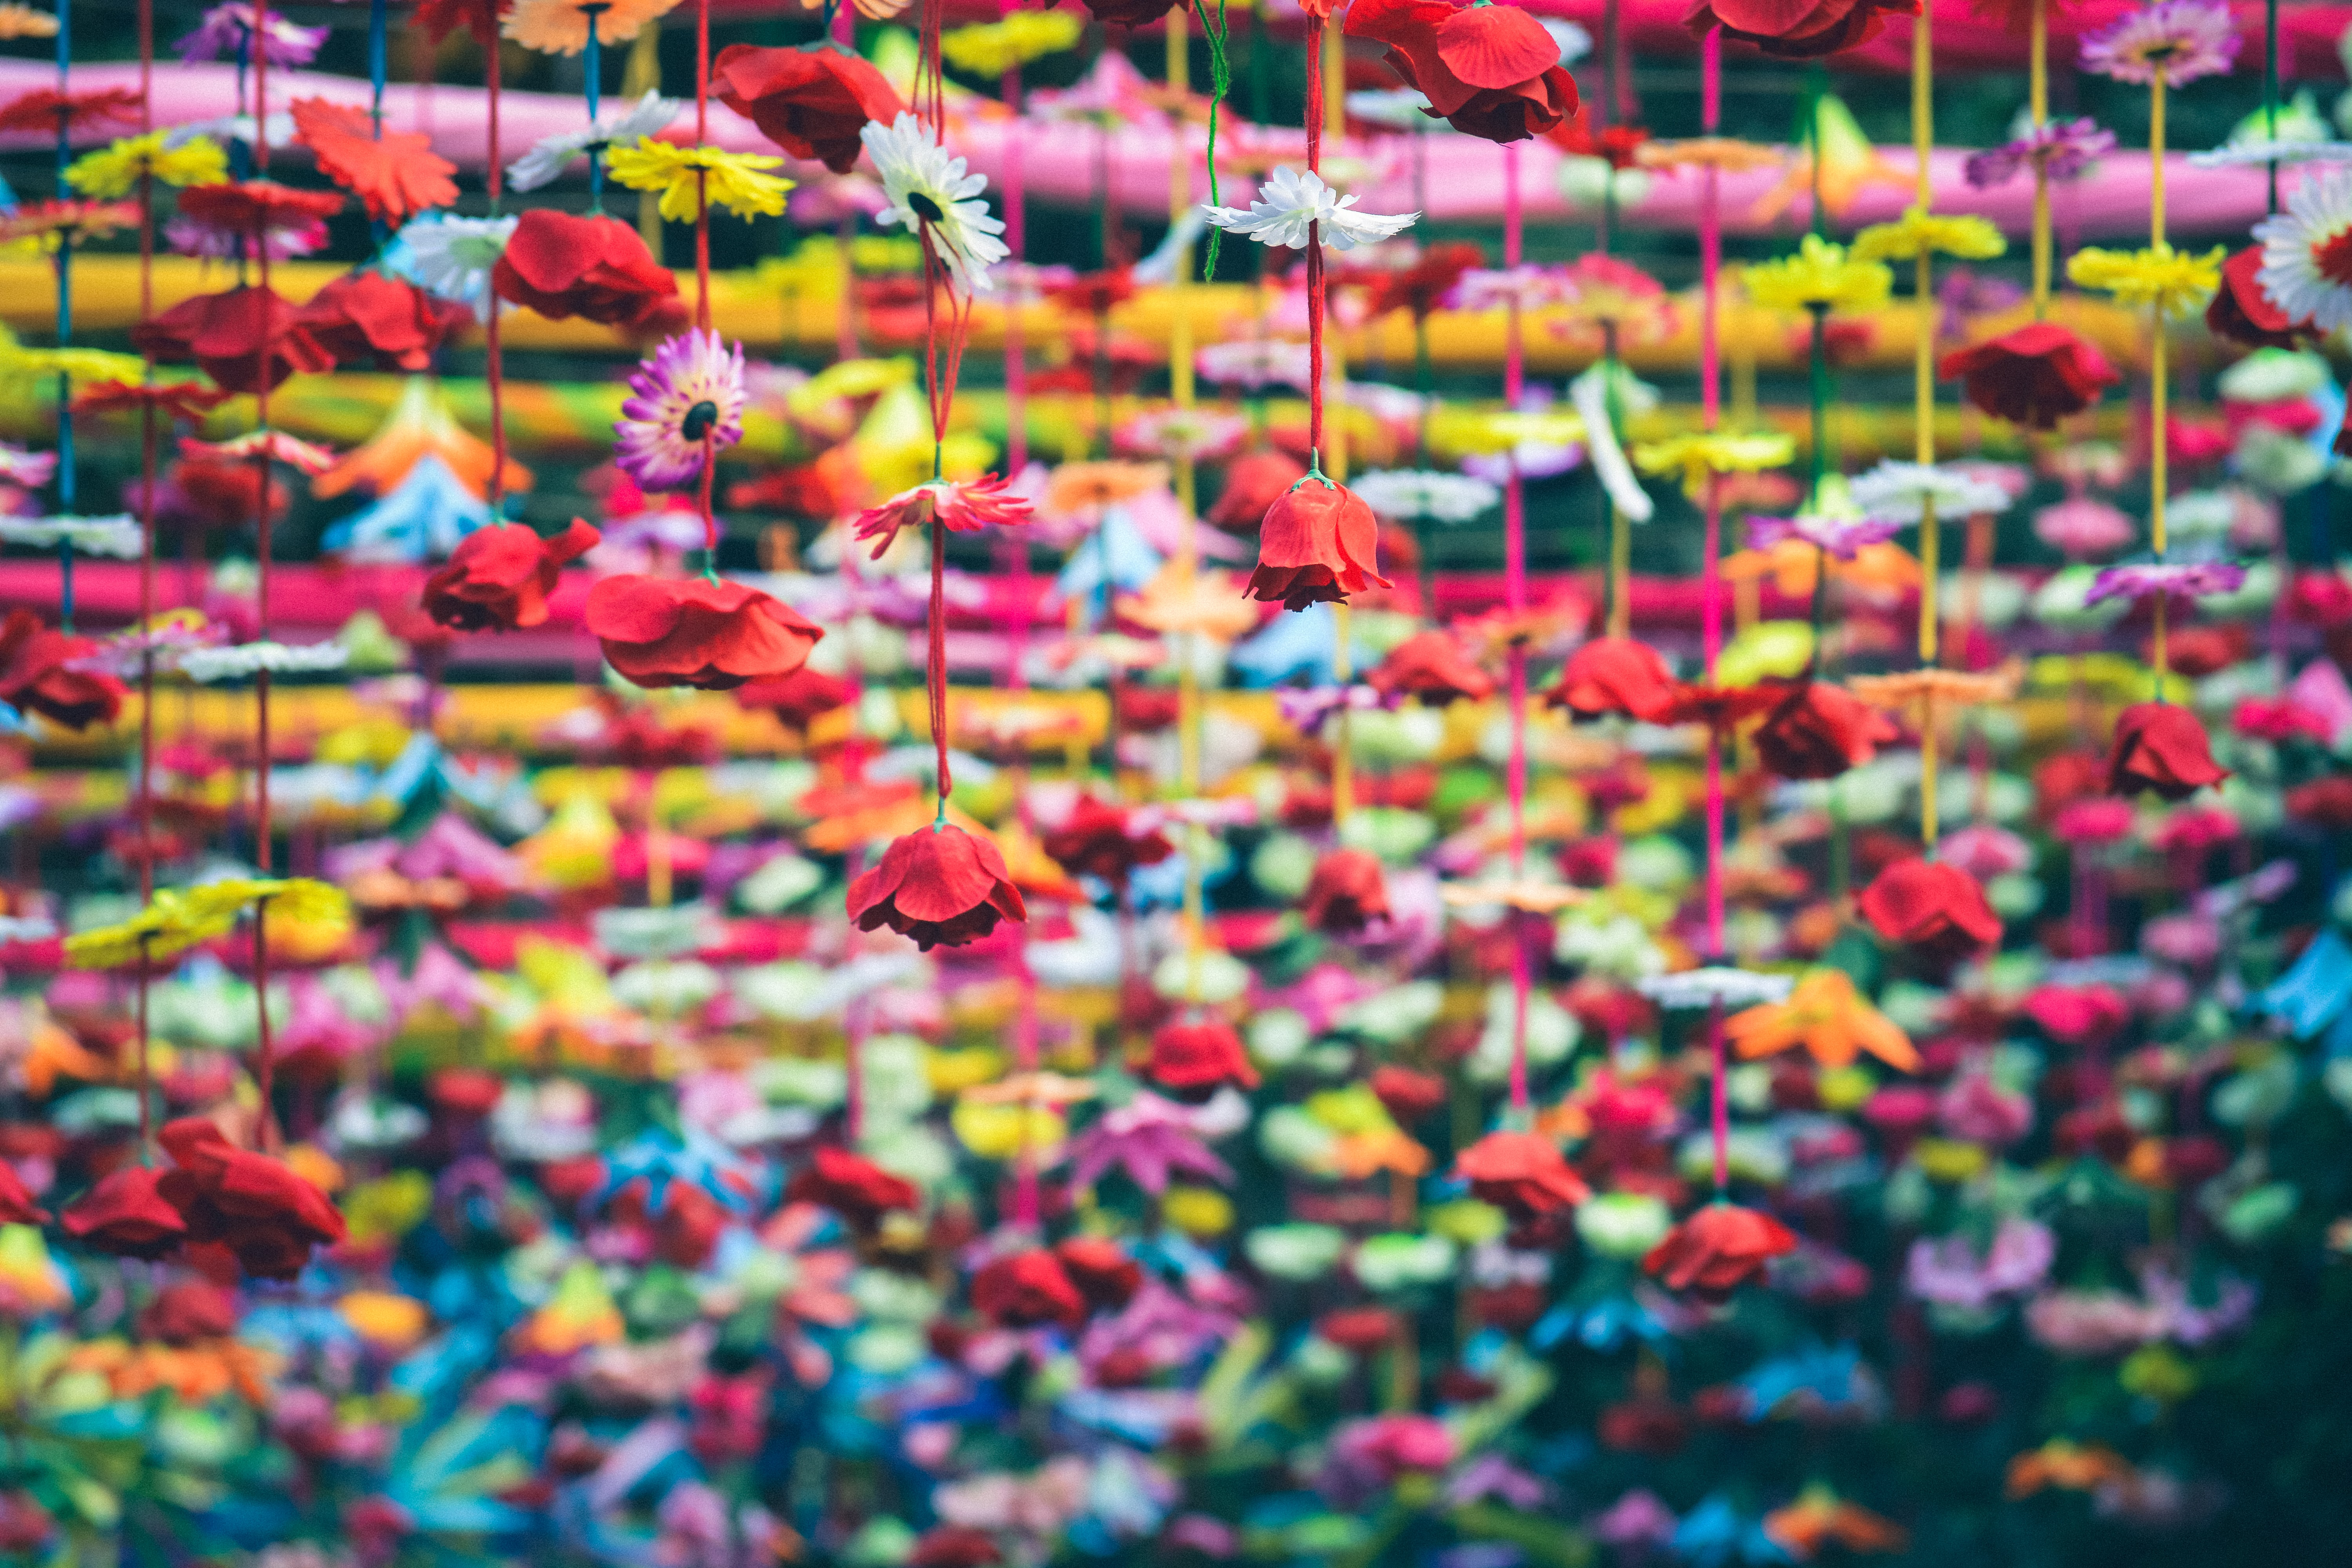 Decorative fake flowers in various colors hanging from above